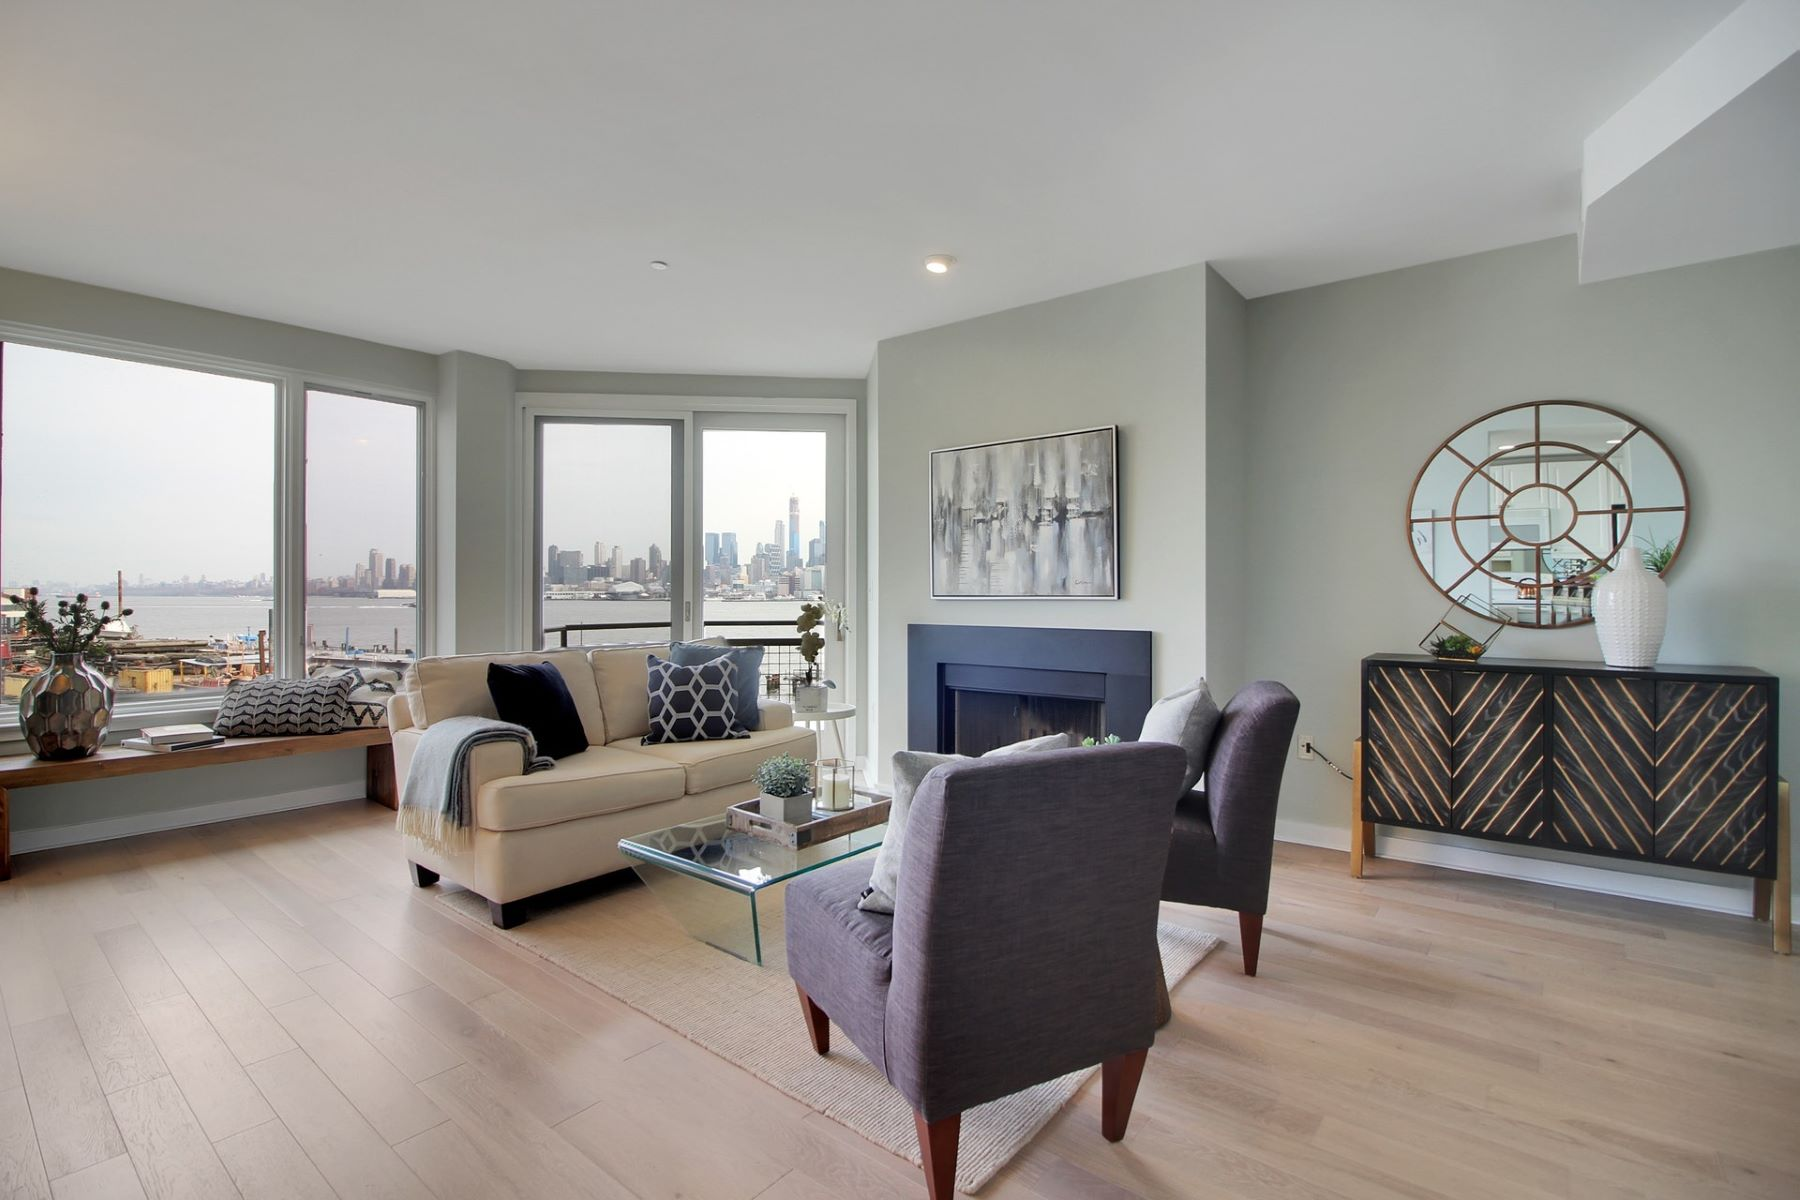 Condominium for Sale at Discover luxury watefront living in this North facing 1BD/1BA home. 600 Harbor Blvd #965, Weehawken, New Jersey 07086 United States